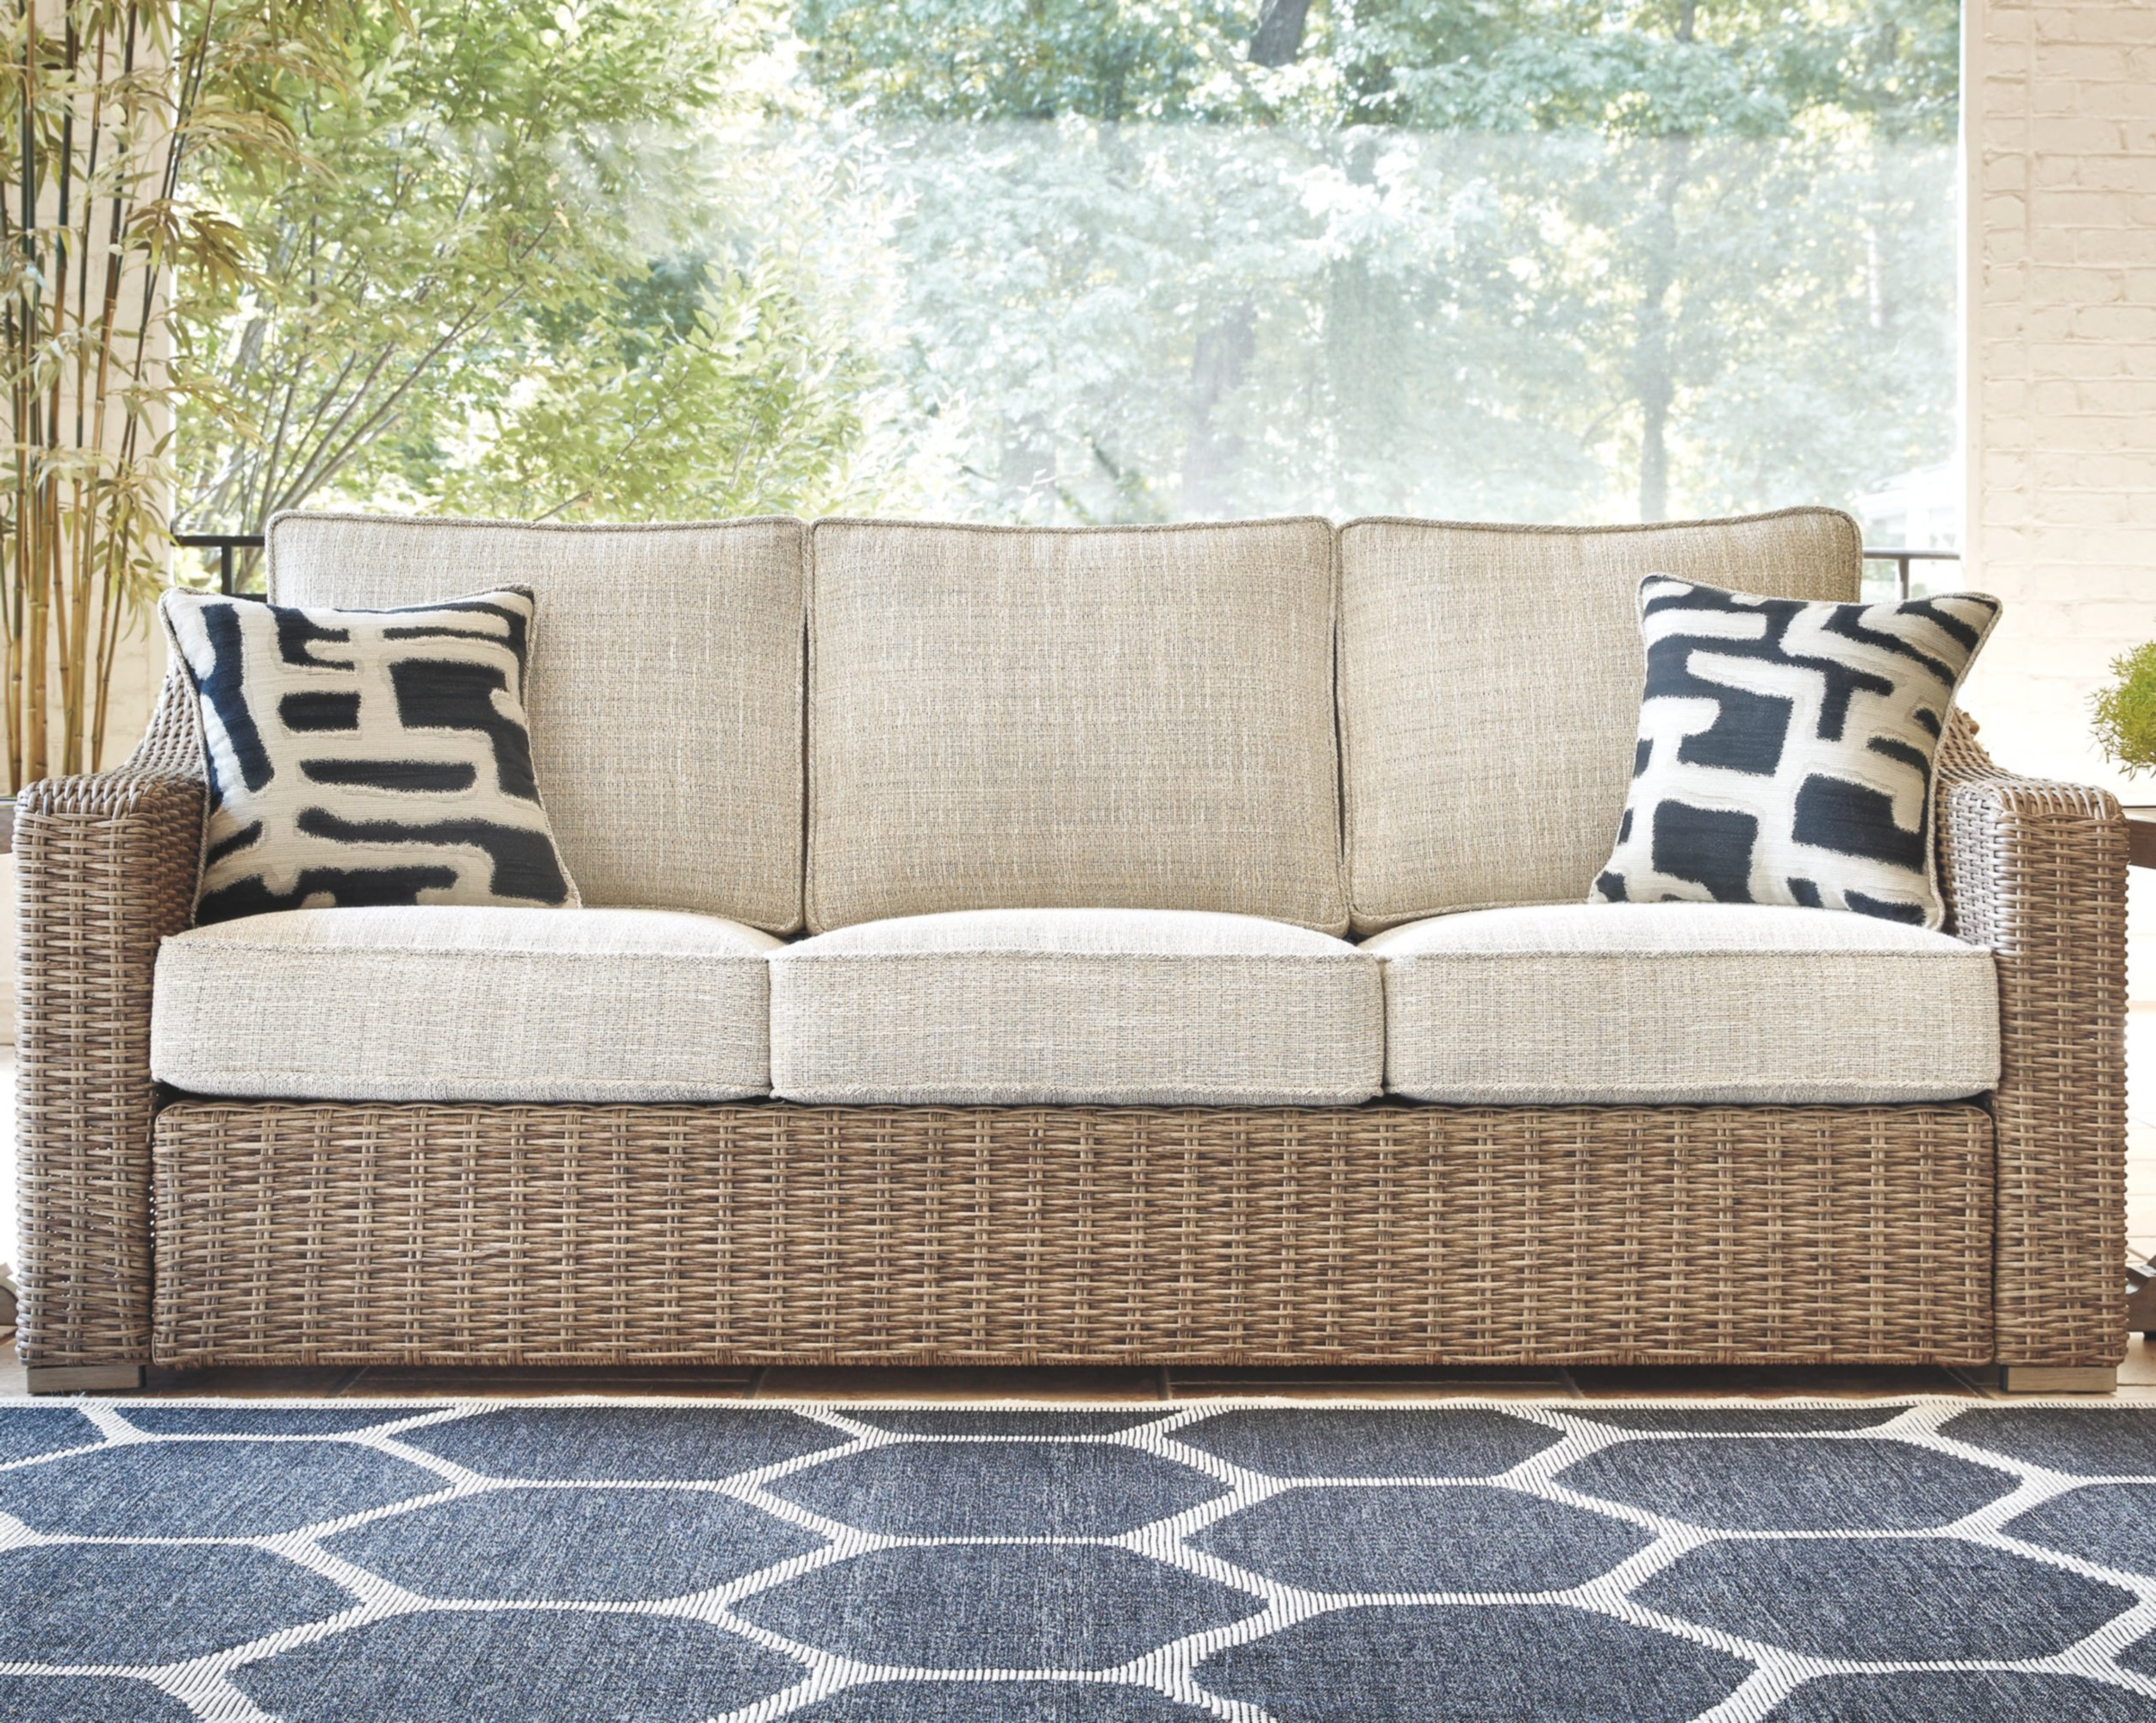 Keever Patio Sofas With Sunbrella Cushions Pertaining To Well Liked Farmersville Patio Sofa With Cushions (View 3 of 20)